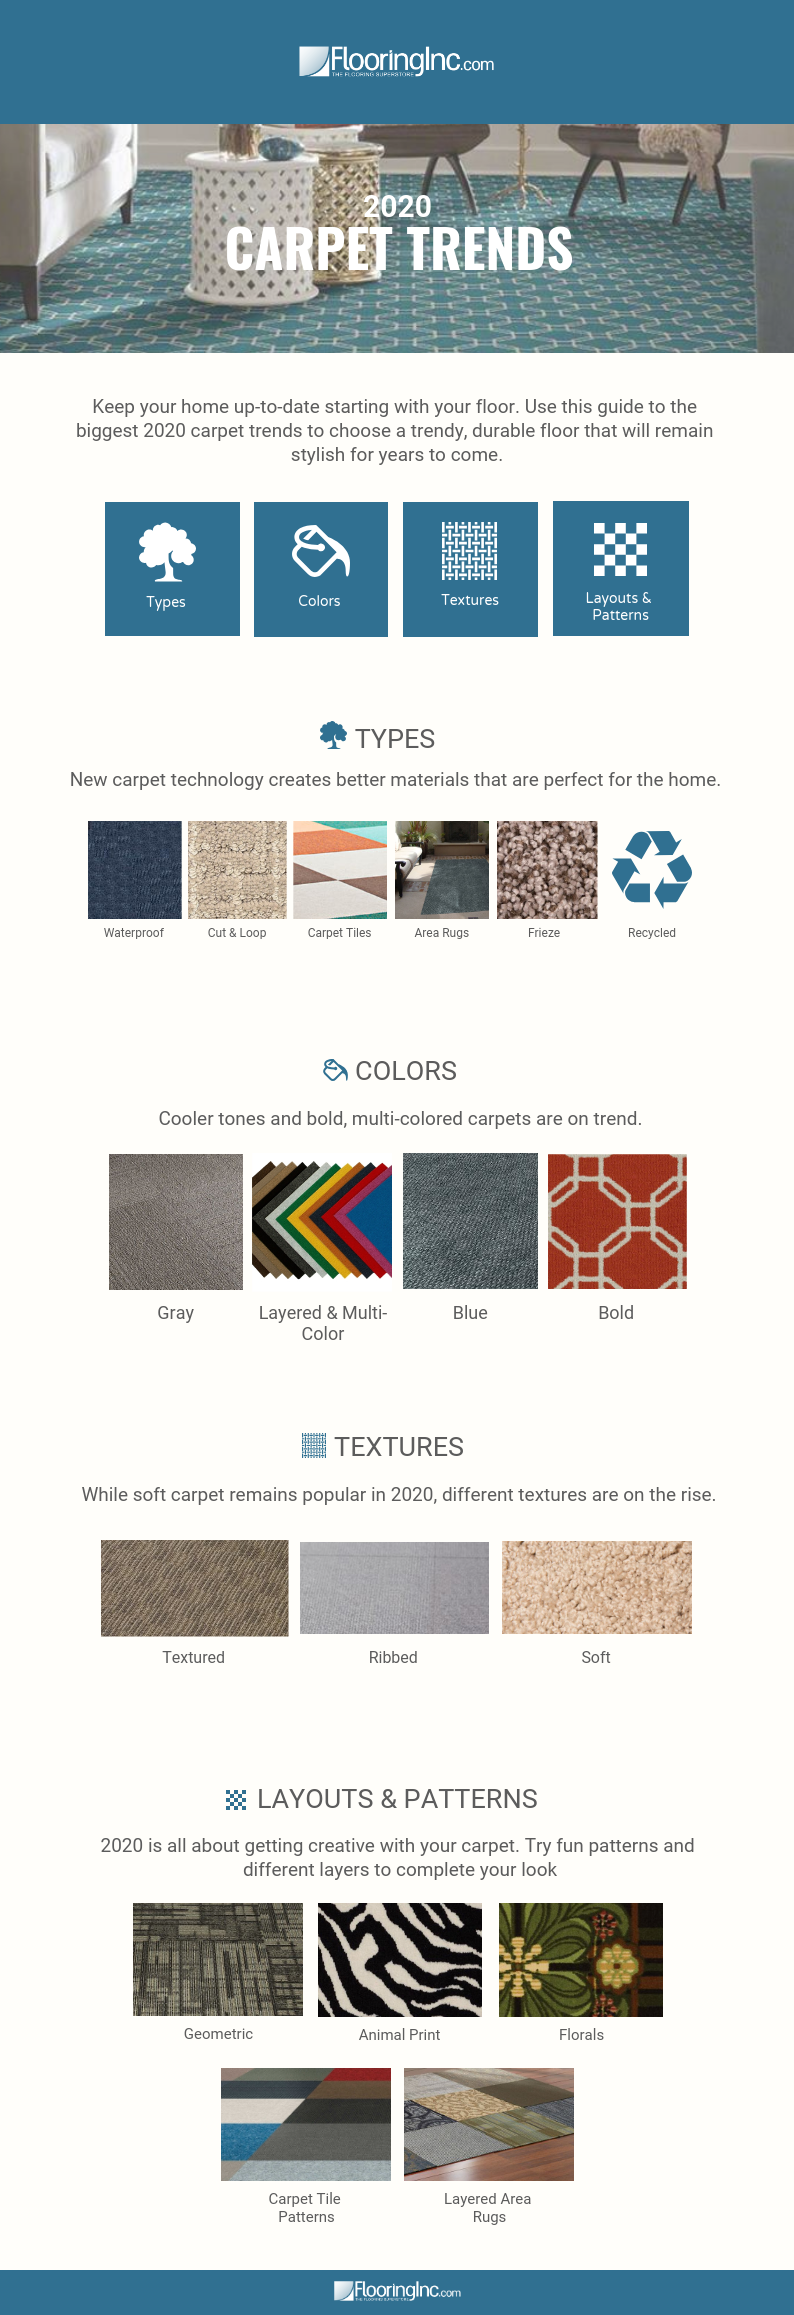 FlooringInc 2020 carpet trends